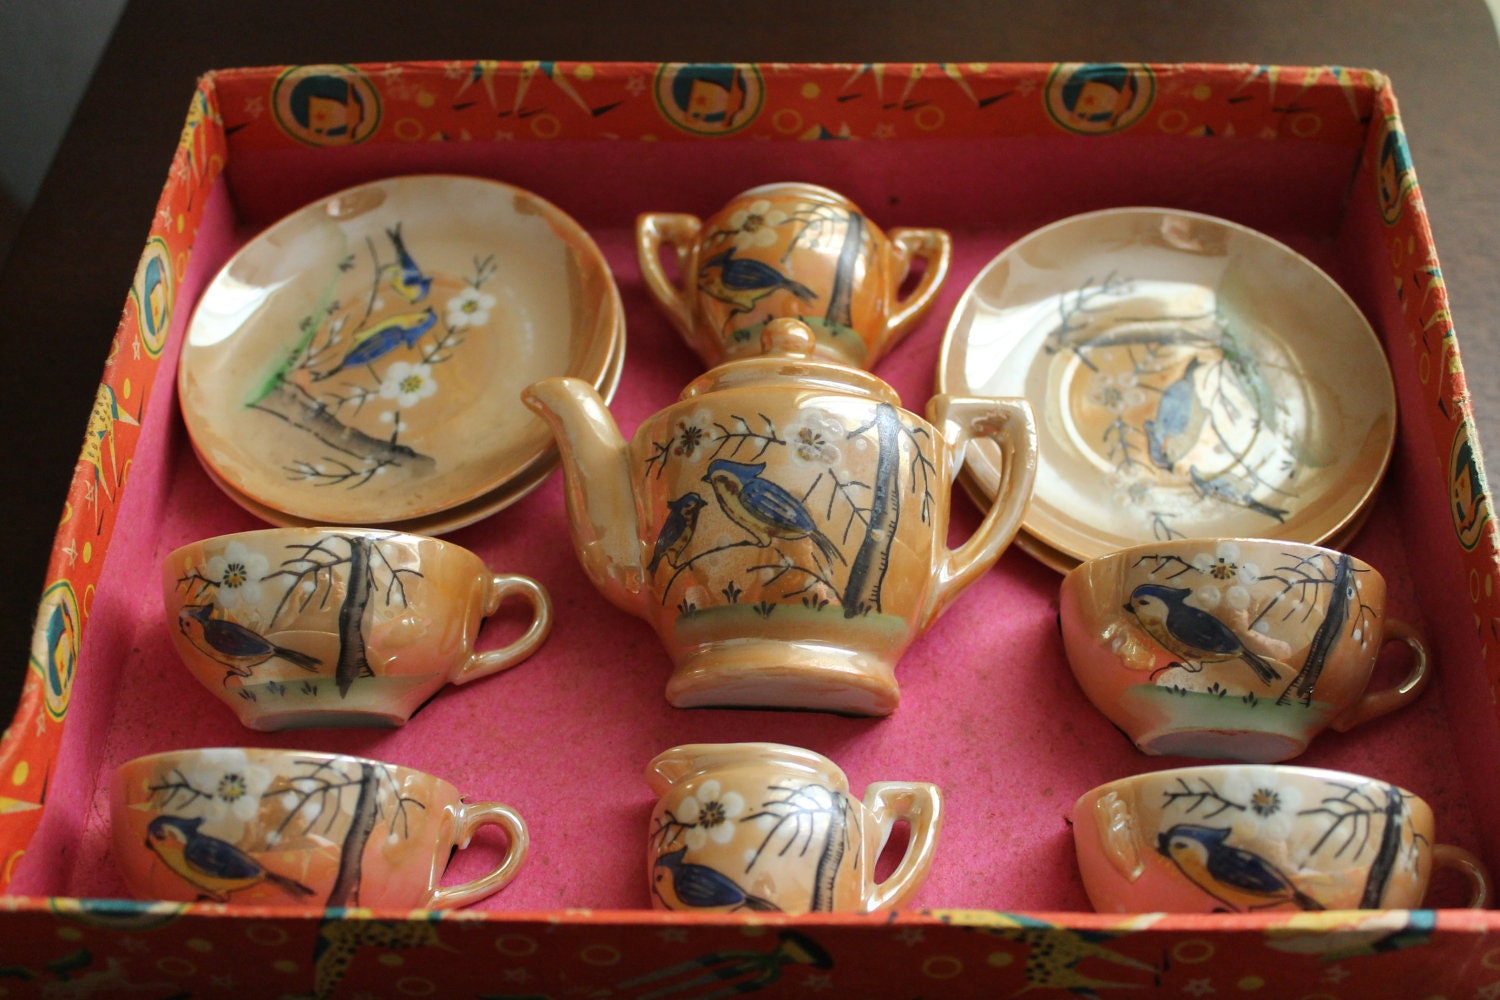 a vintage children's tea set with artistic detailing of birds